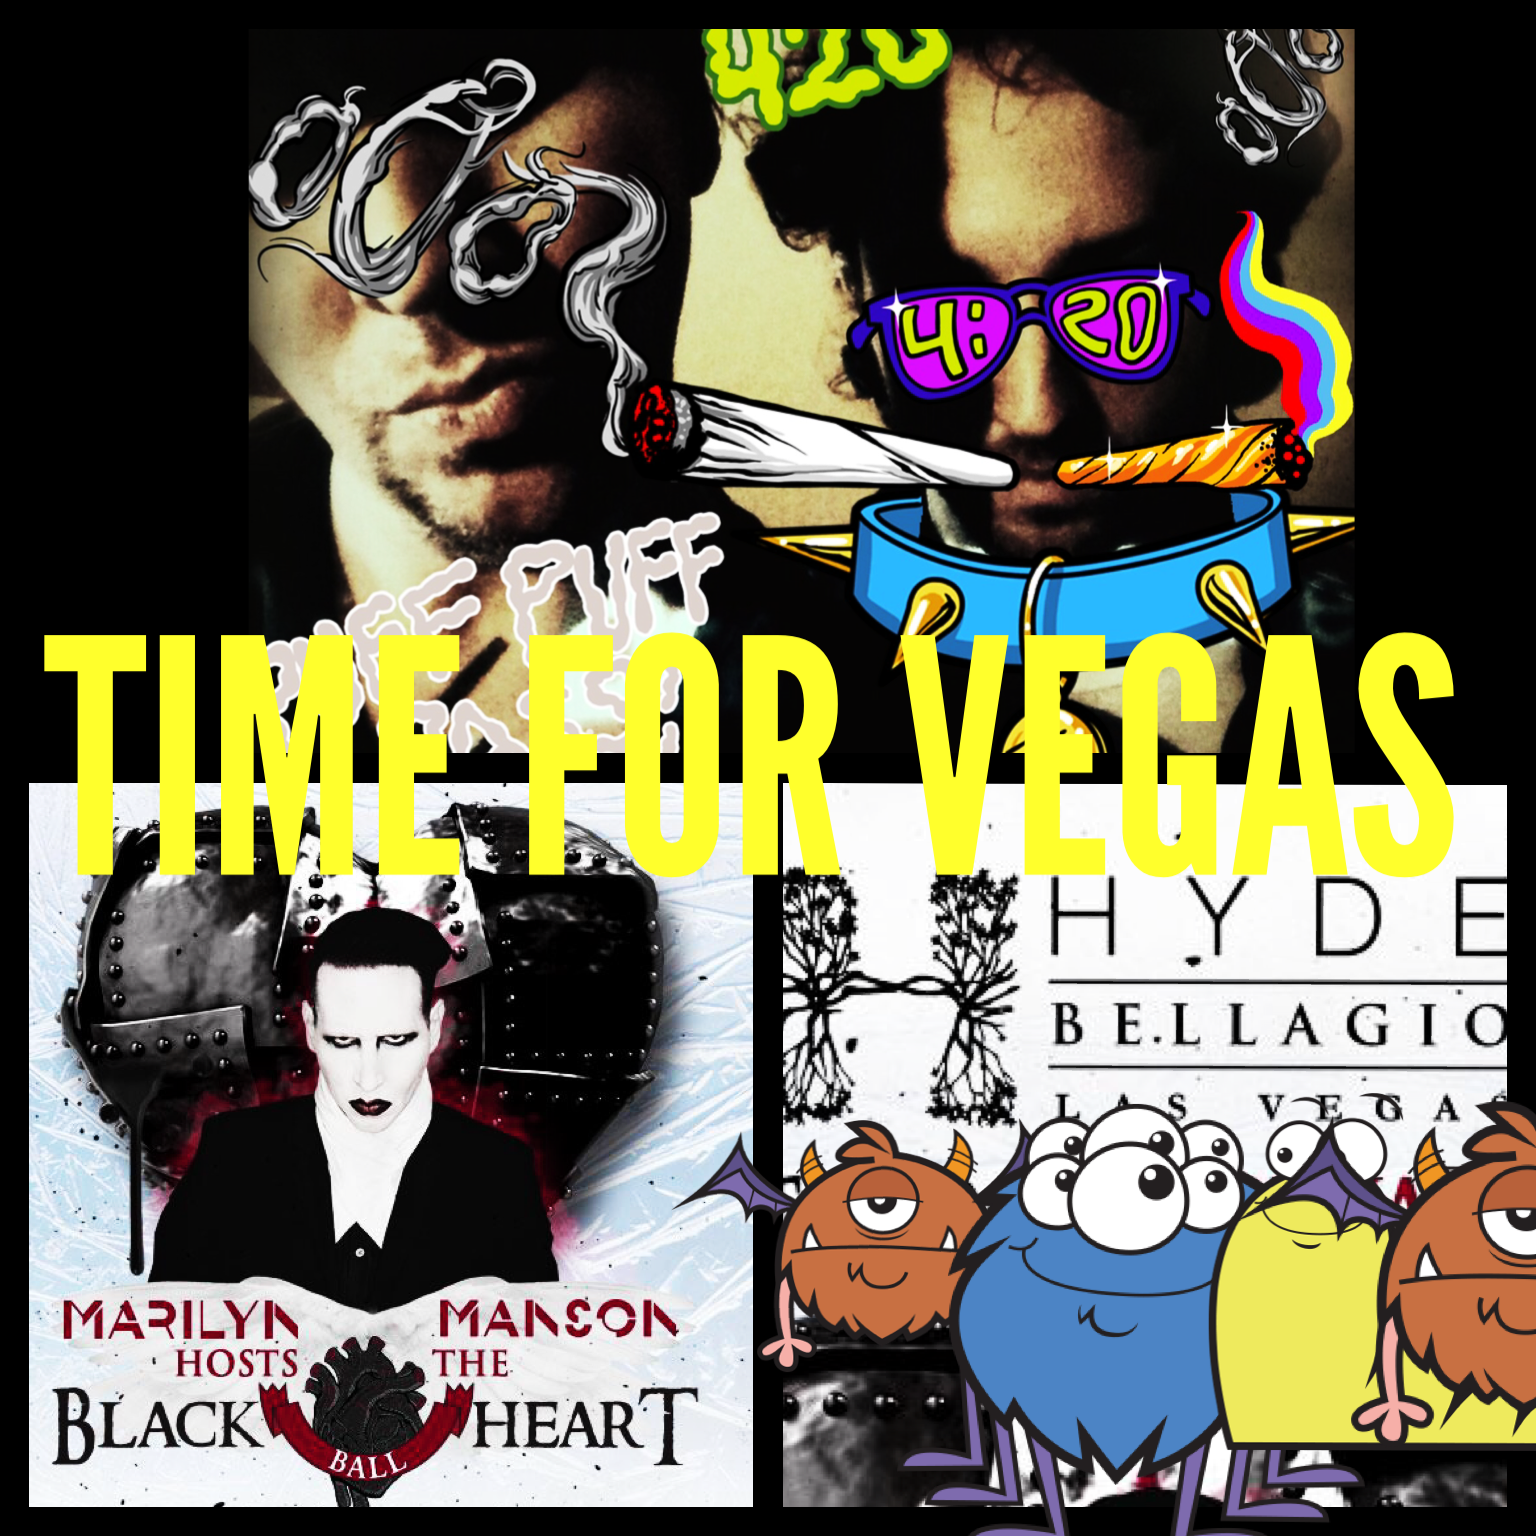 Marilyn Manon Hosts the Black Heart Party at HYDE Bellagio